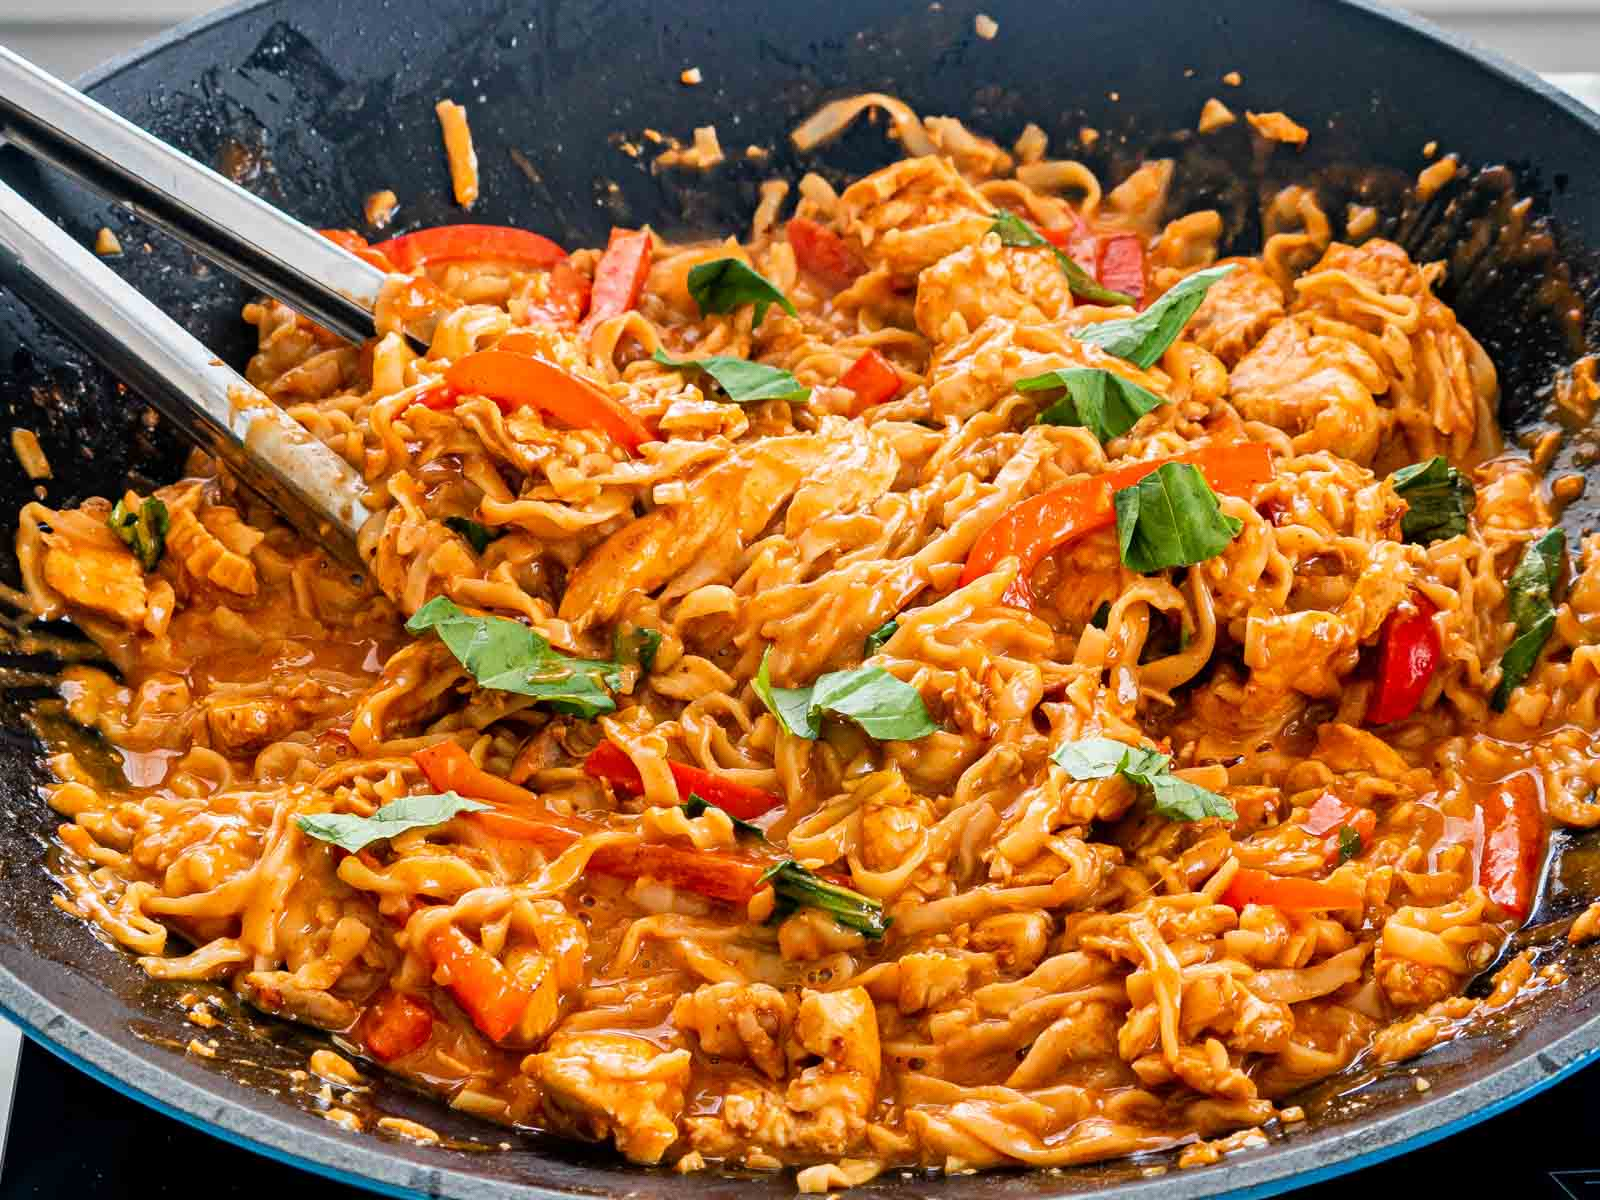 spicy peanut noodles in a wok with a pair of tongs inside